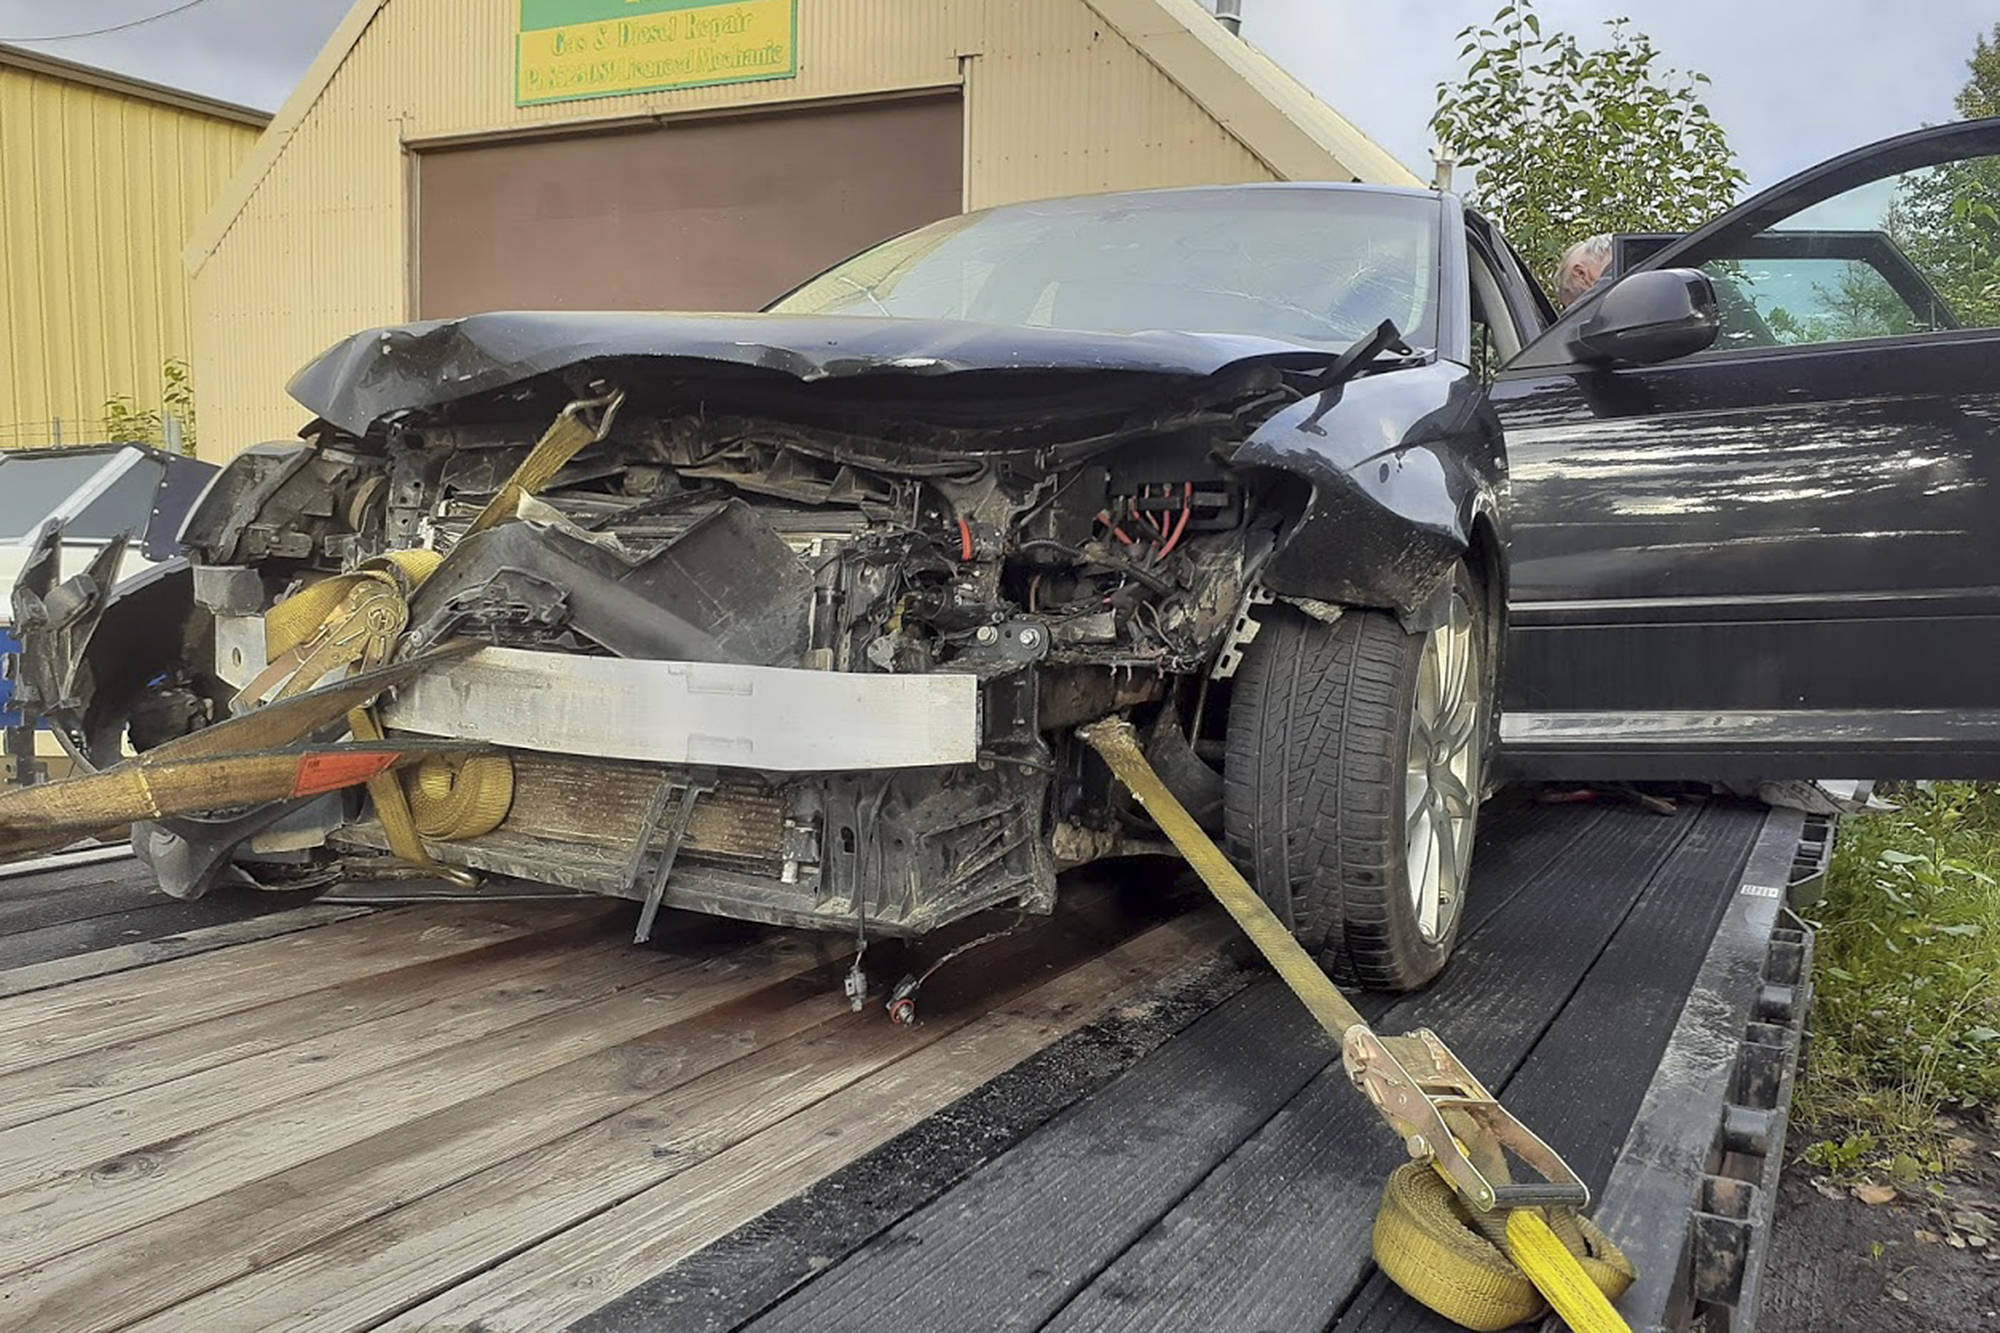 An Audi belonging to Jerry Petkau of Salmon Arm is a total write-off after an encounter with a black bear in eastern B.C. on Aug. 6. Petkau was not injured but the bear was killed. (Contributed)